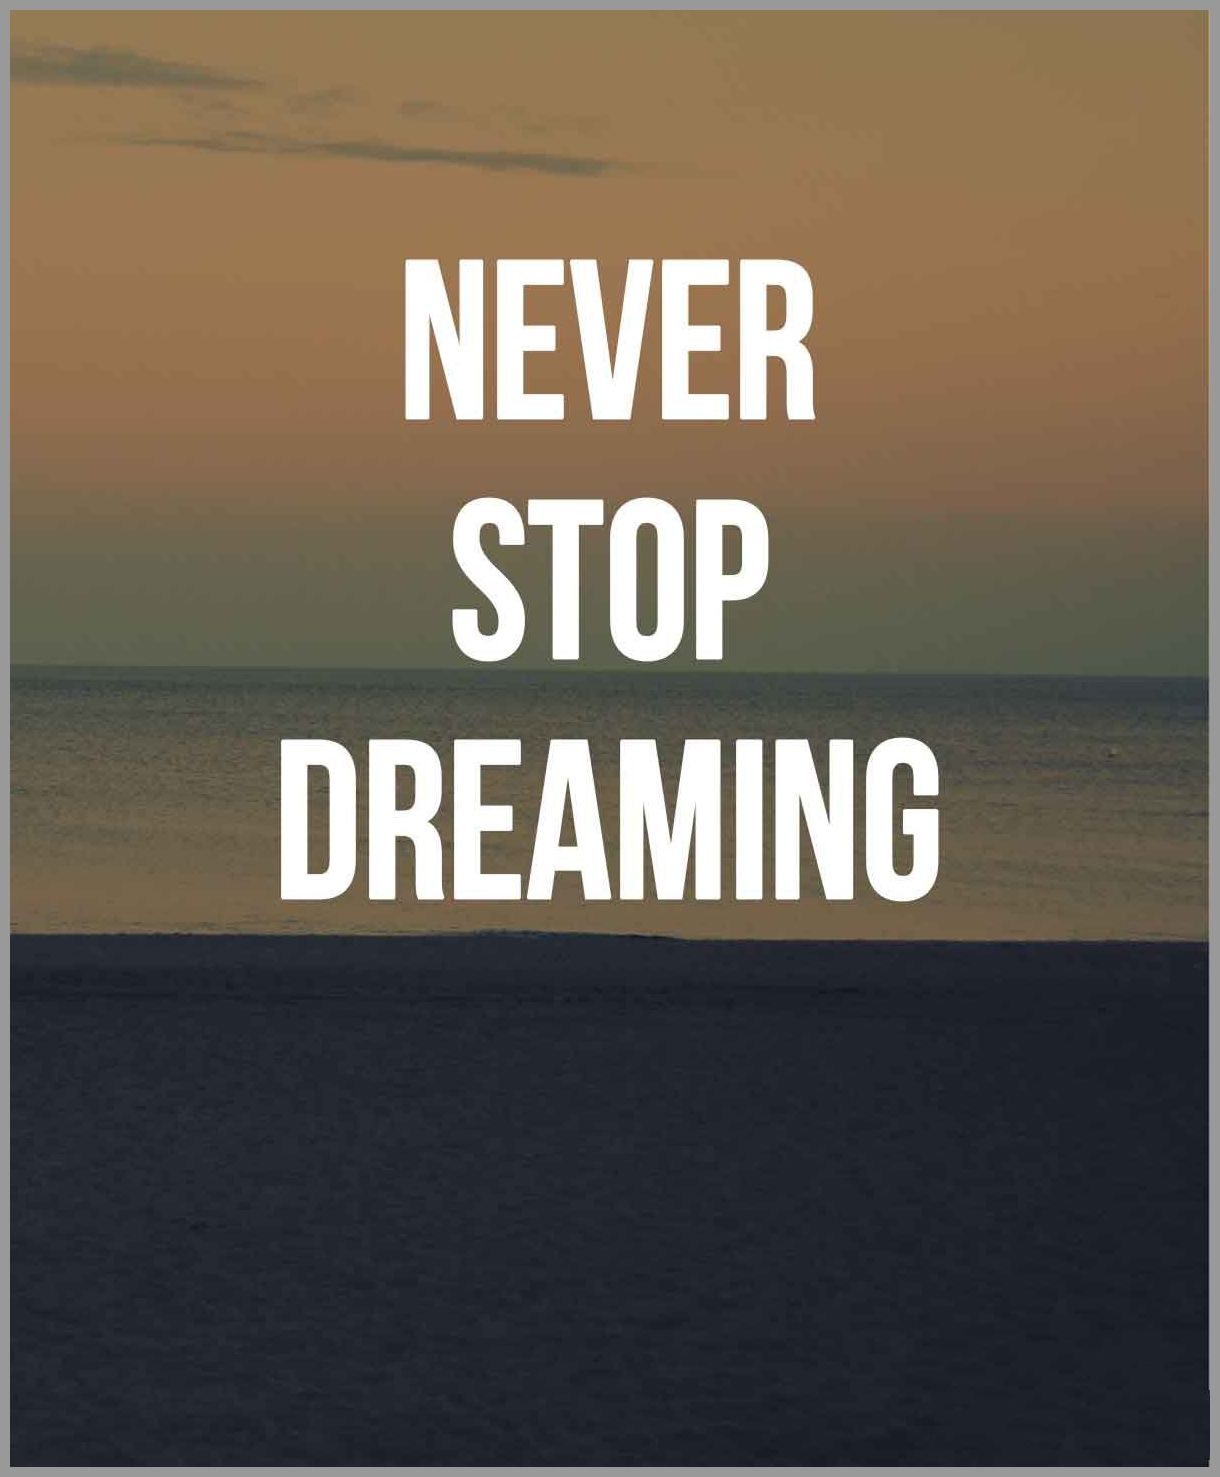 Never stop dreaming - Never stop dreaming